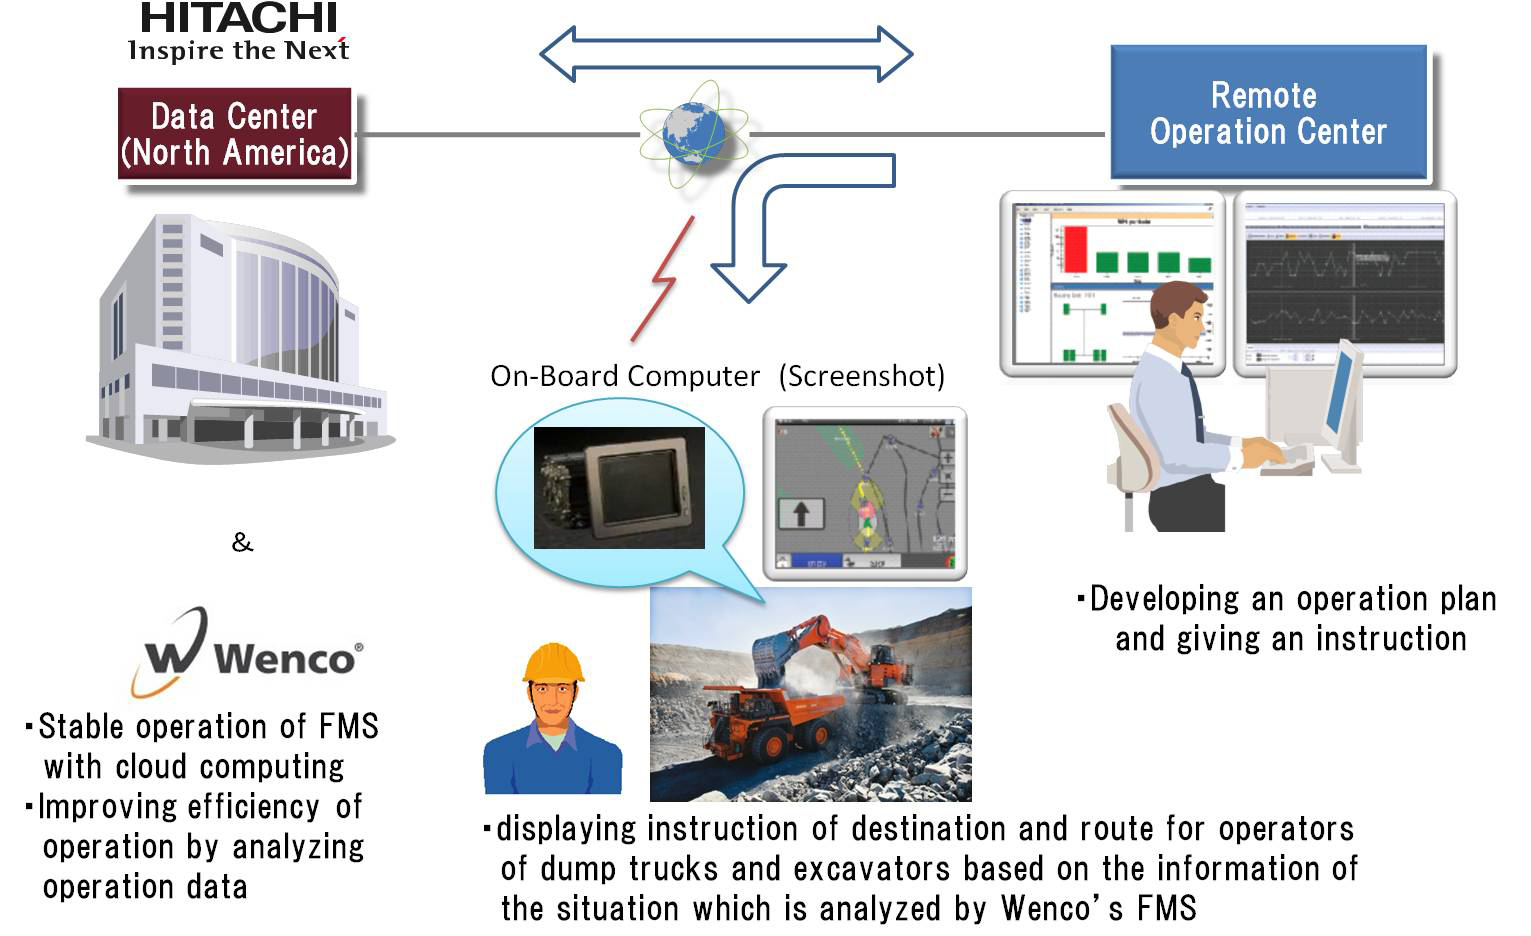 Hitachi and Wenco Commence a Proof of Concept Project for